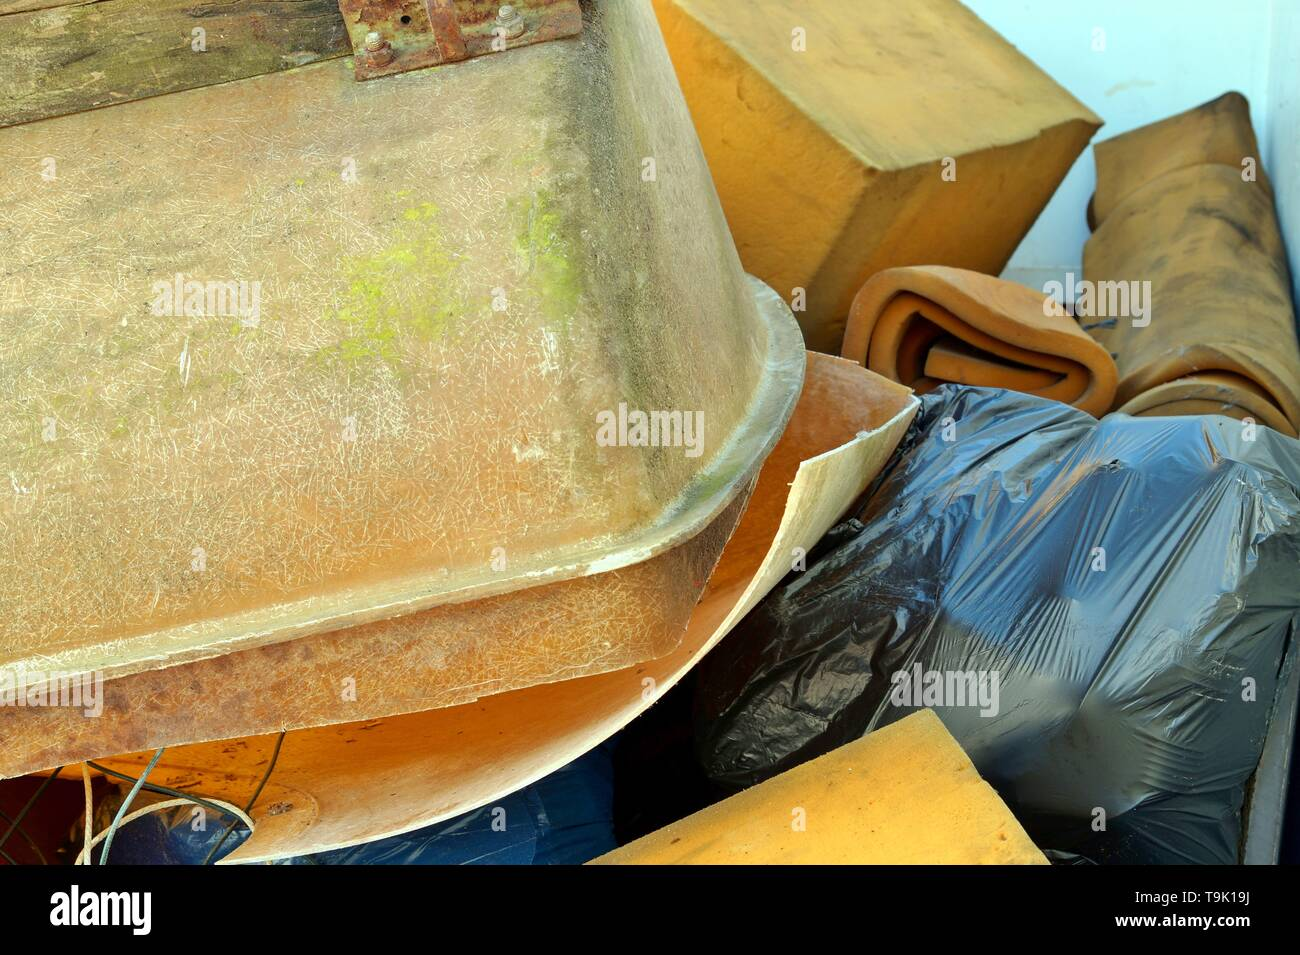 Large amount of used Foam base and old bathtub about to be recycled. Waste Disposal concept for consumerism, modernization, digital age, urbanization, - Stock Image